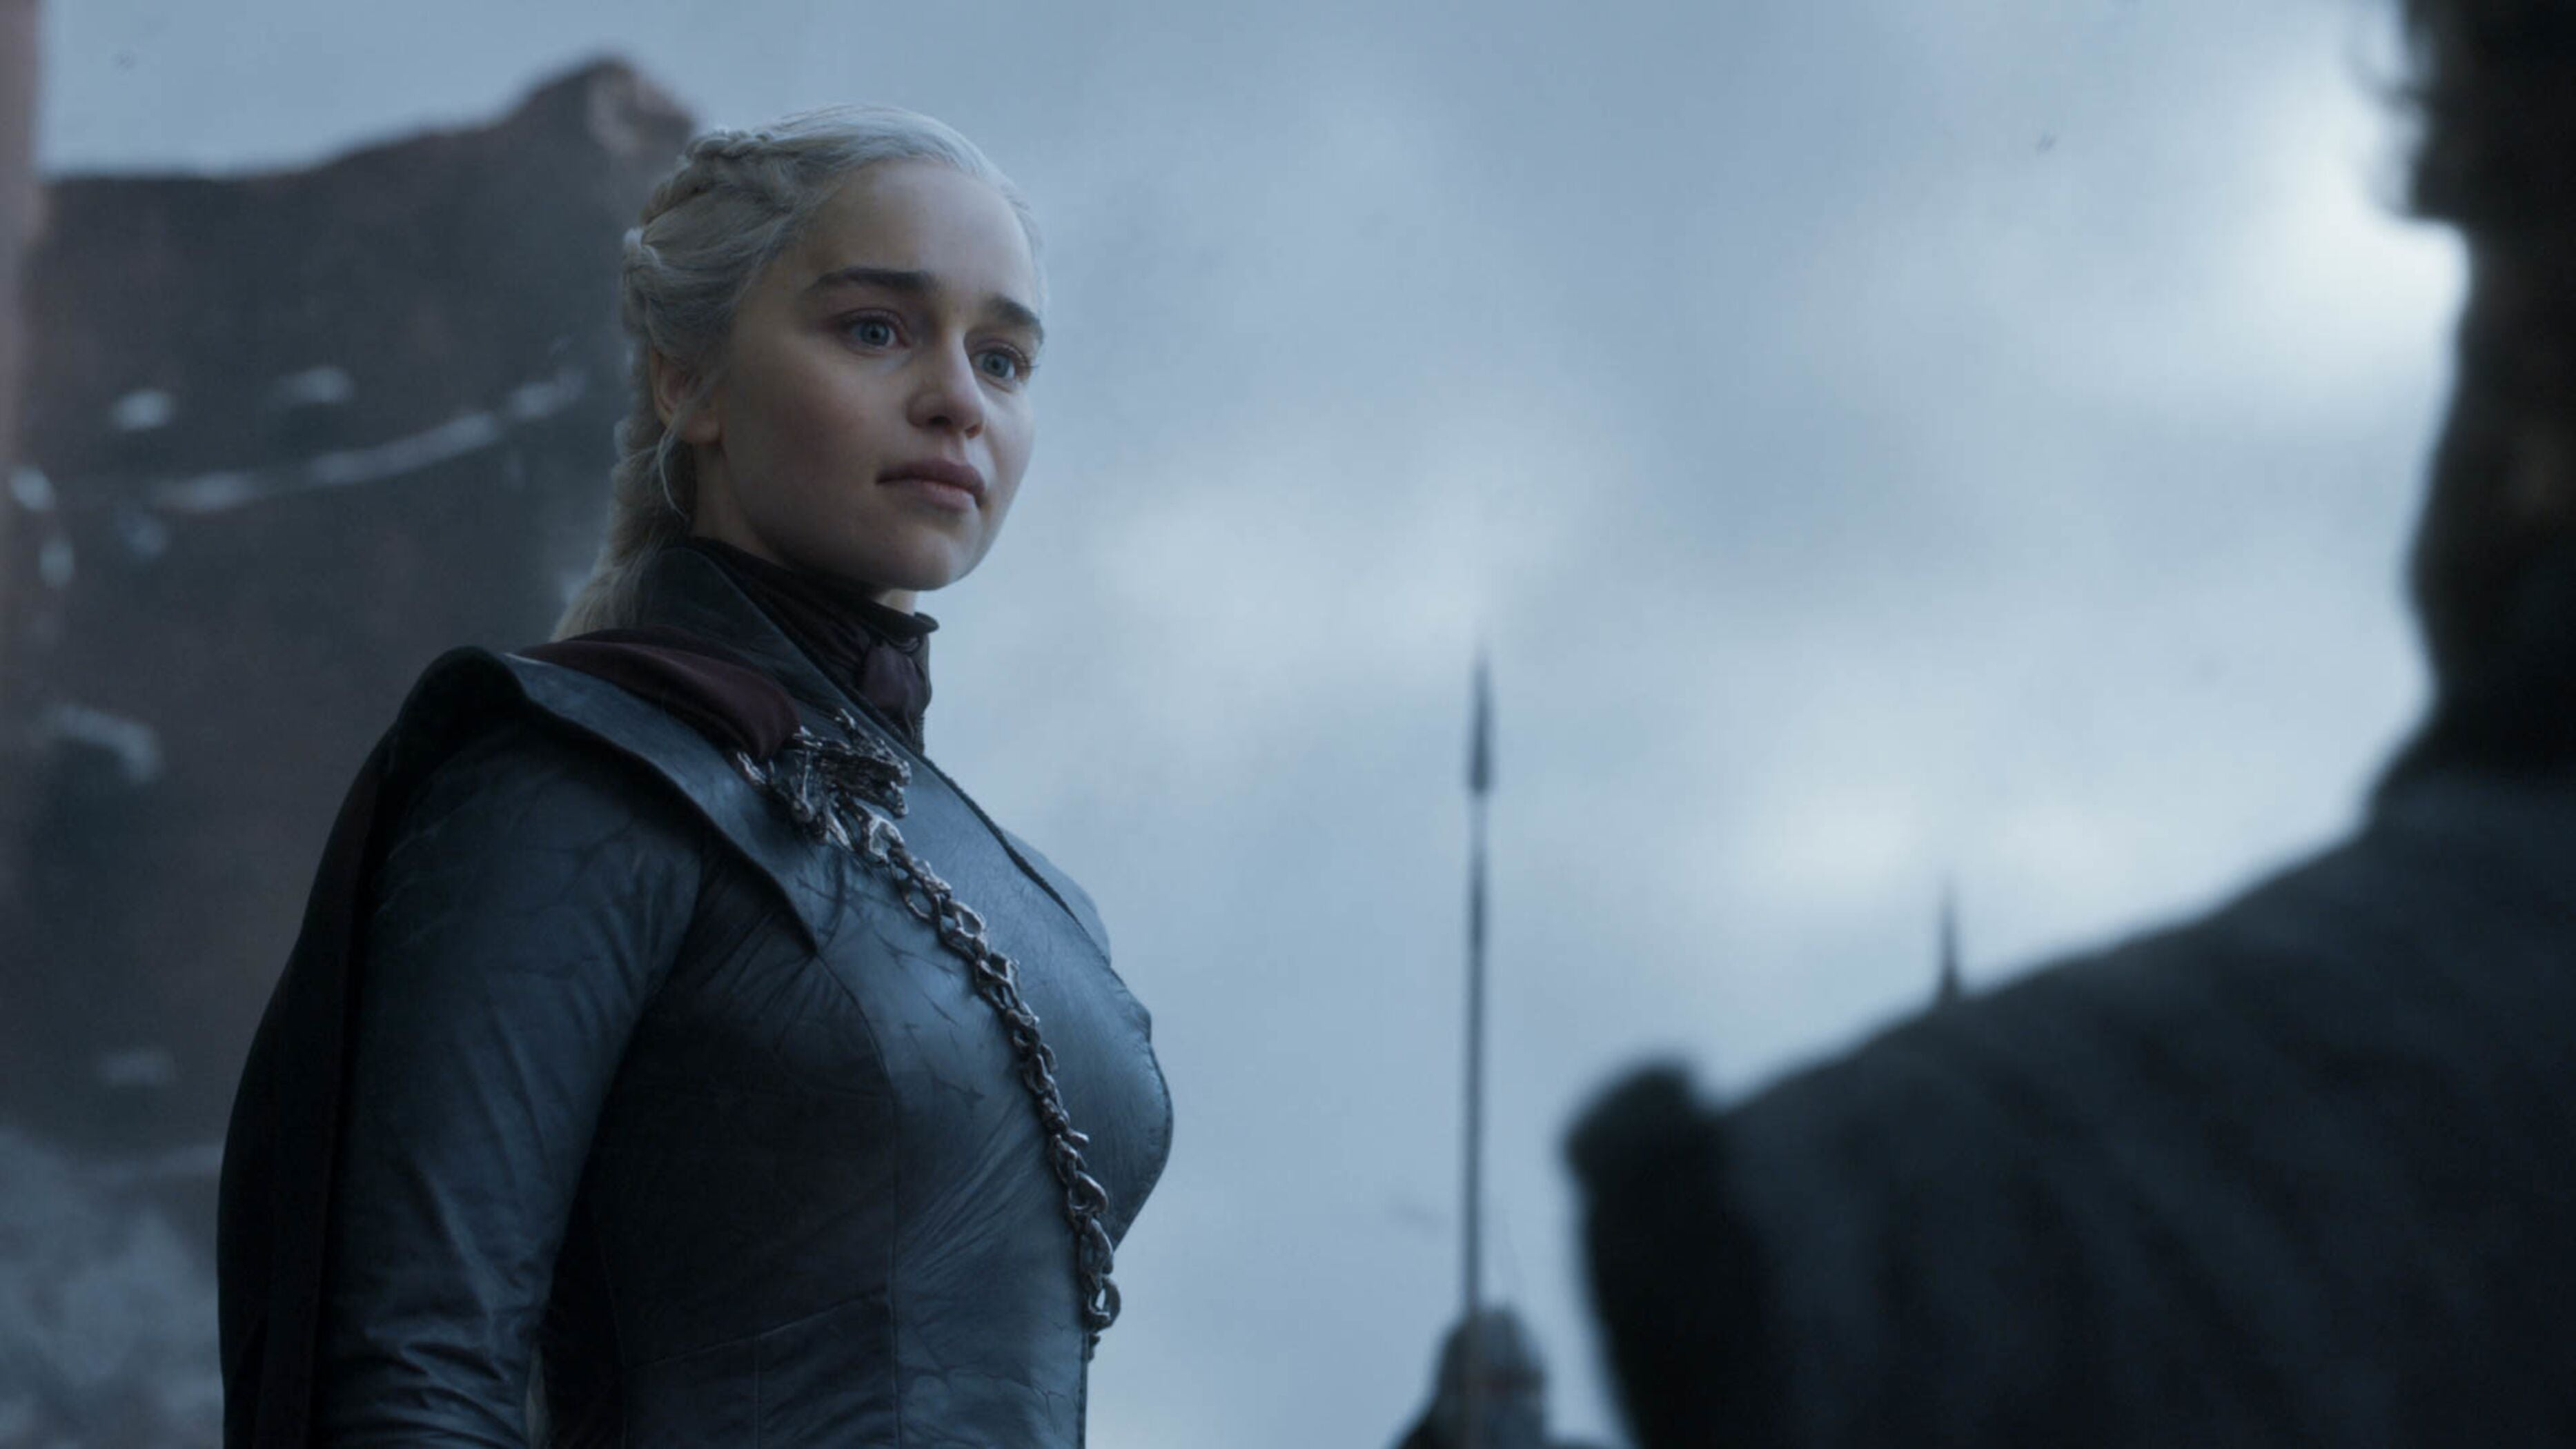 slate.com - Willa Paskin - Game of Thrones' Ending Didn't Fit the Show It Had Become